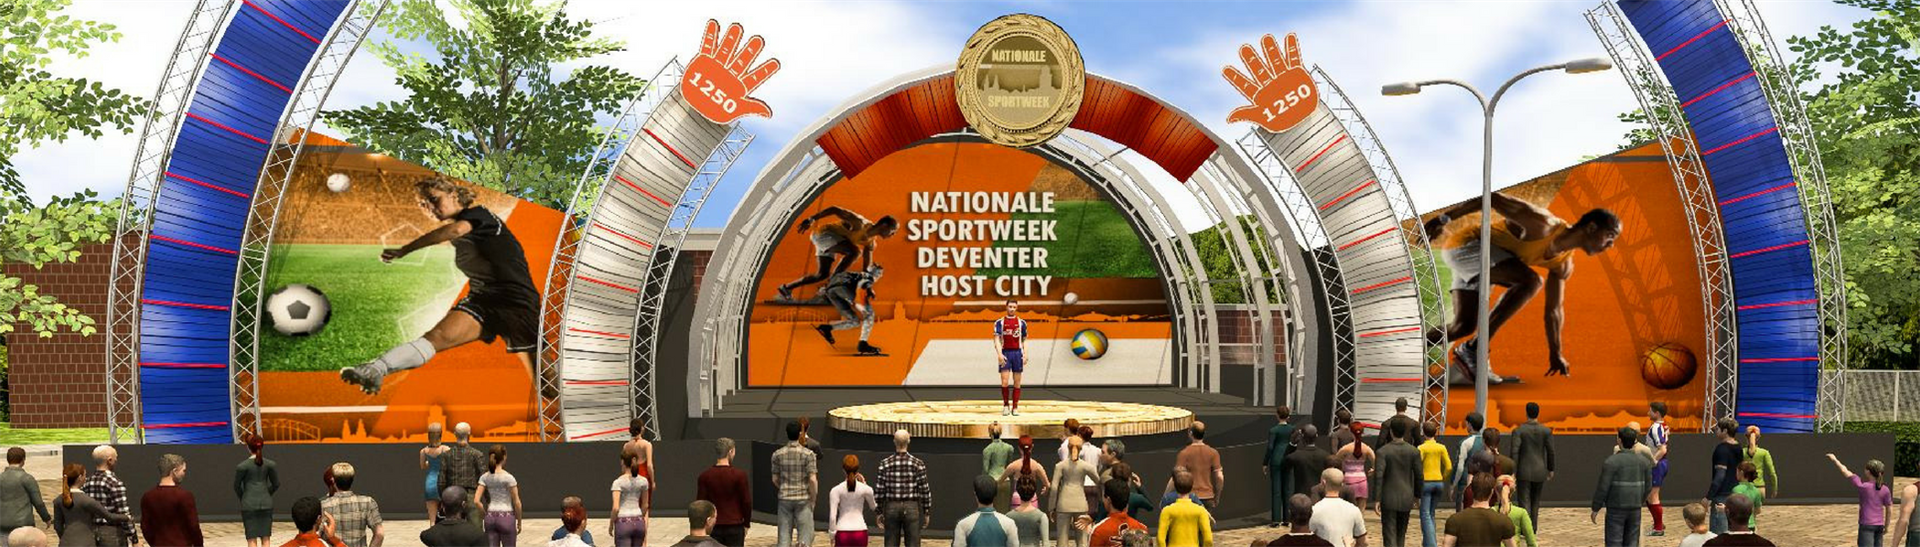 Nationale Sportweek Deventer